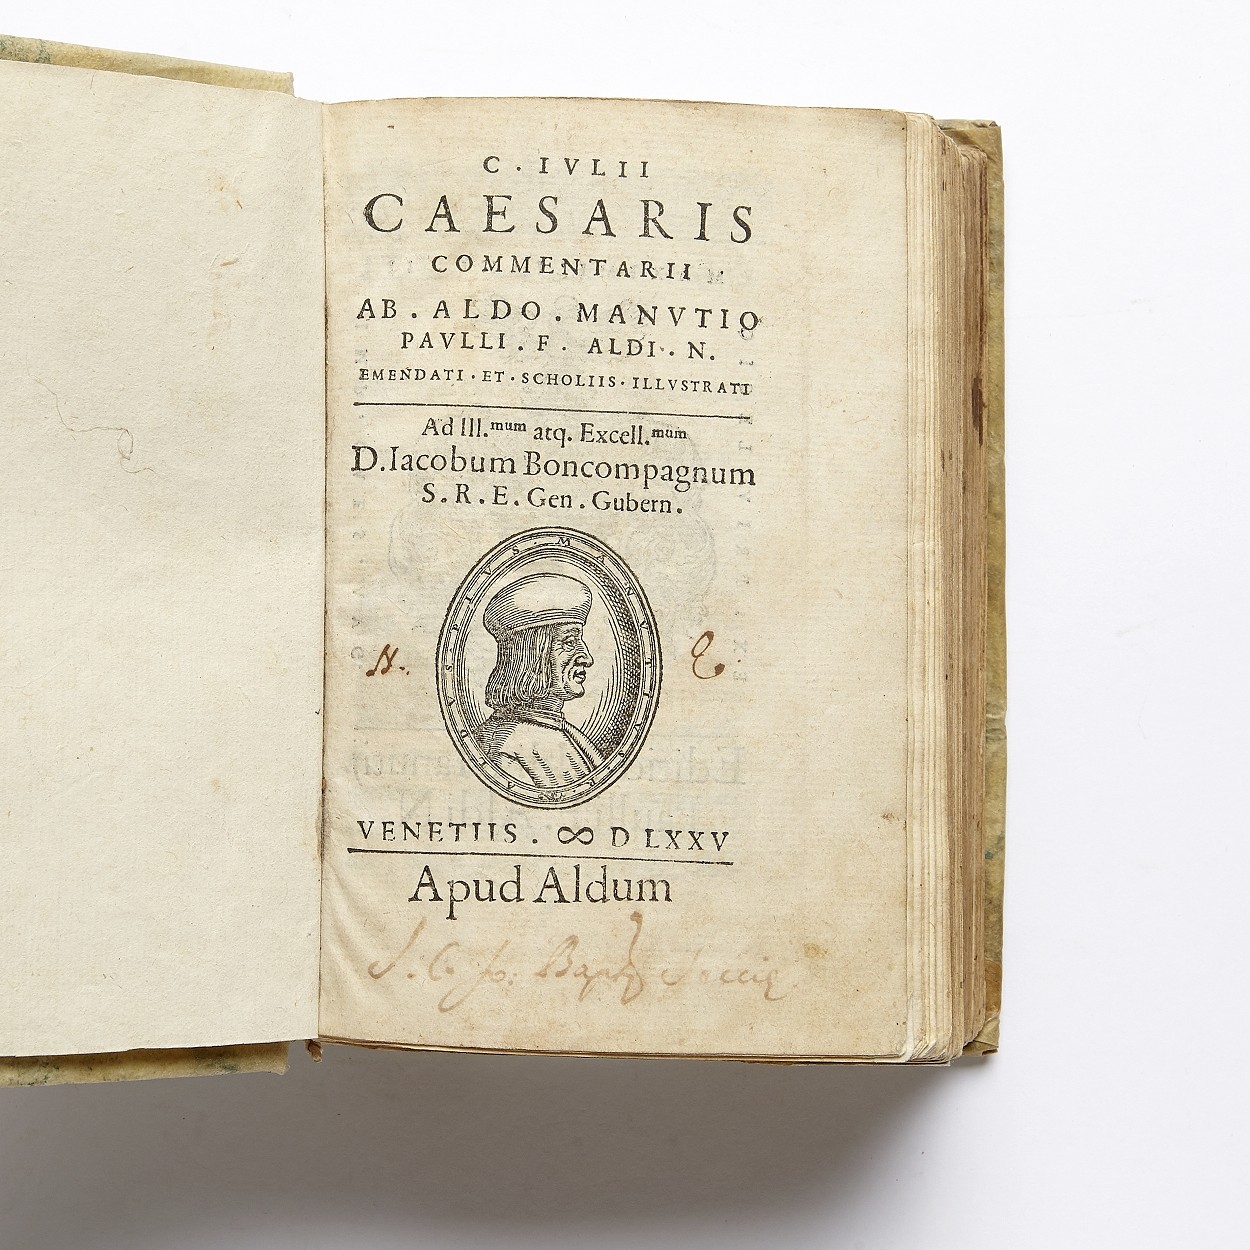 Octavo edition of Caesar Commentarii Venice 1575